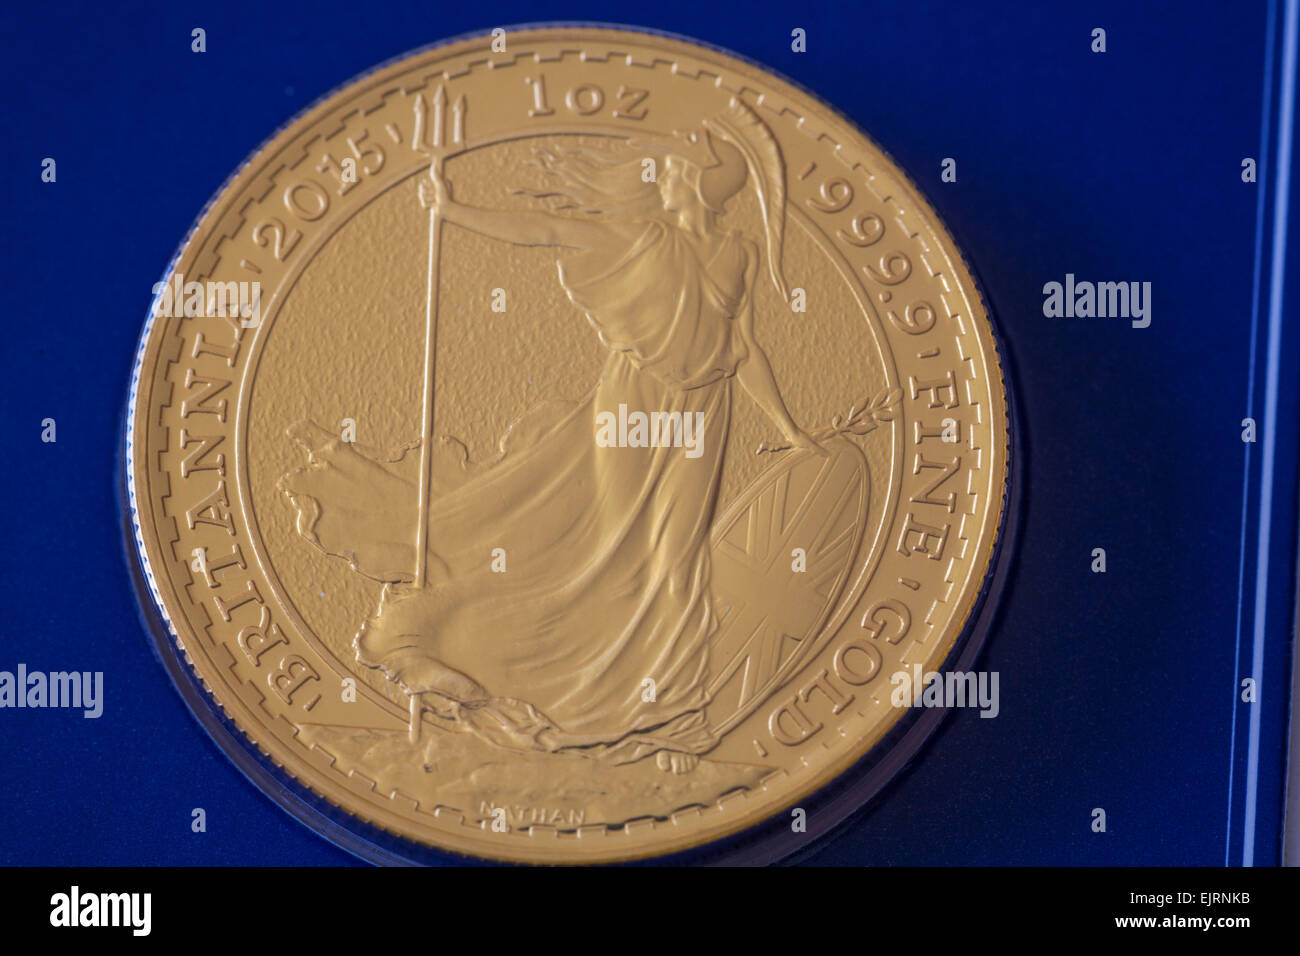 Close up Britannia 2015 one ounce fine gold bullion coin uncirculated valuable investment - Stock Image